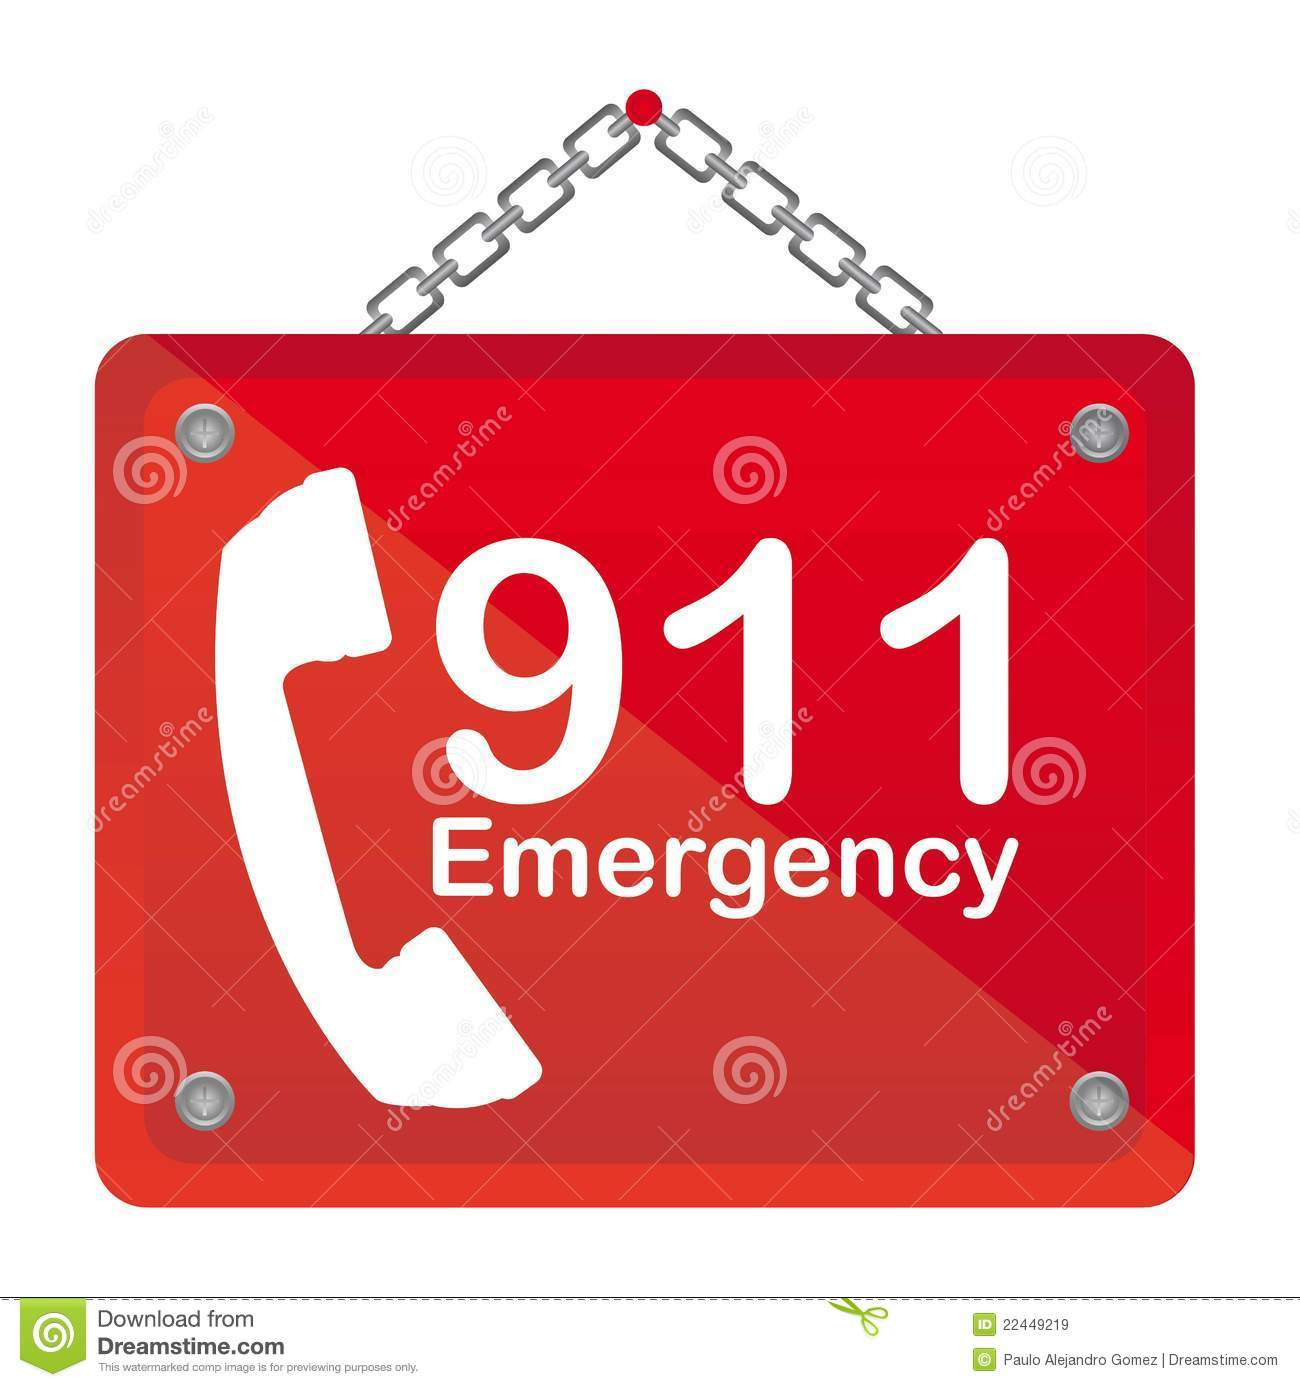 911 Emergency Royalty Free Stock Images